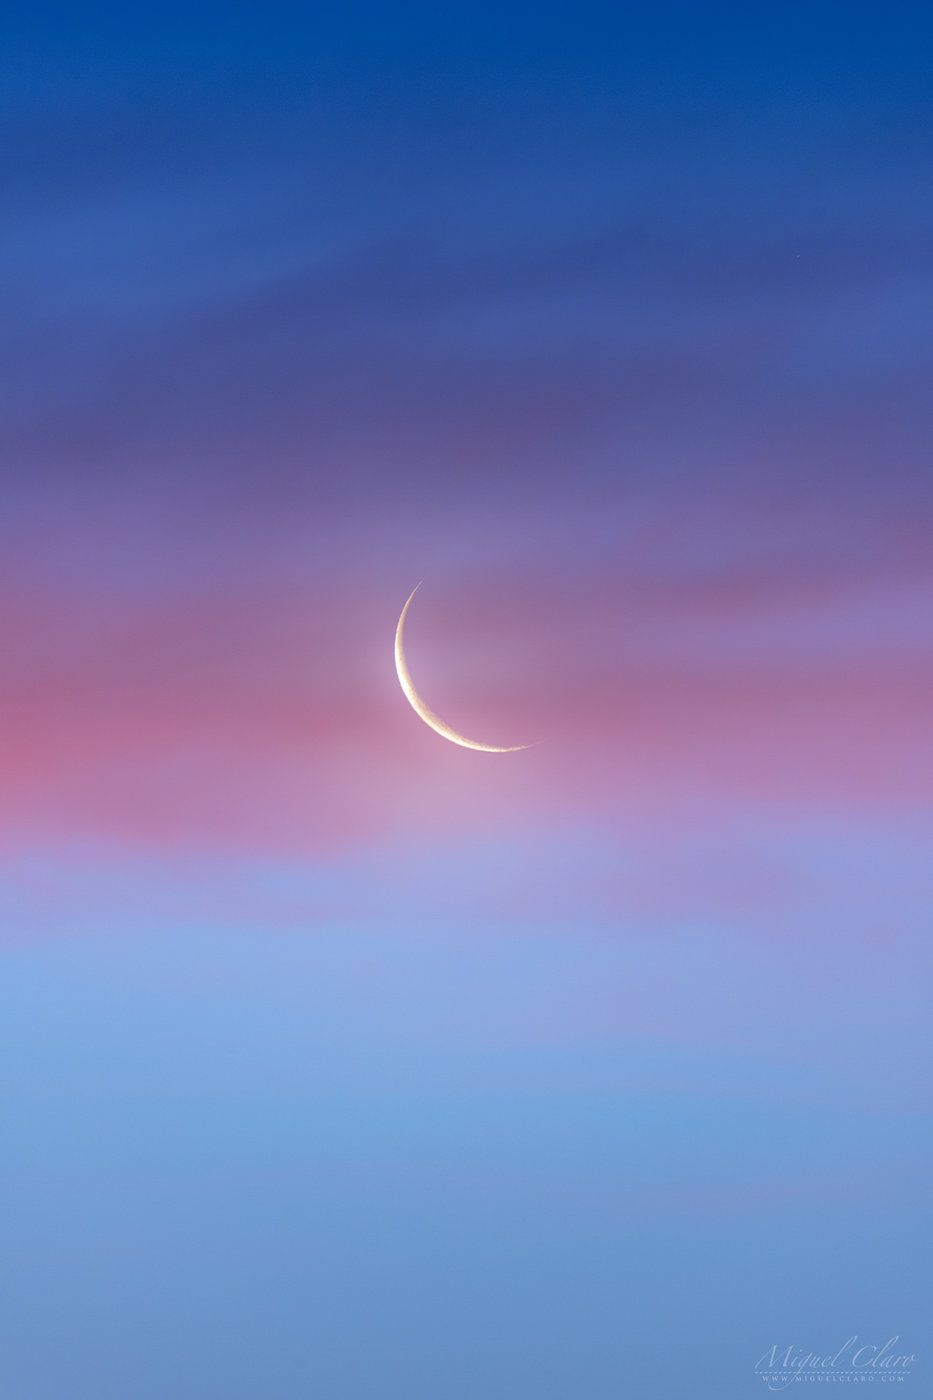 Pink Clouds Adorn Crescent Moon In Gorgeous Photo Sky Aesthetic Moon Photography Pink Clouds